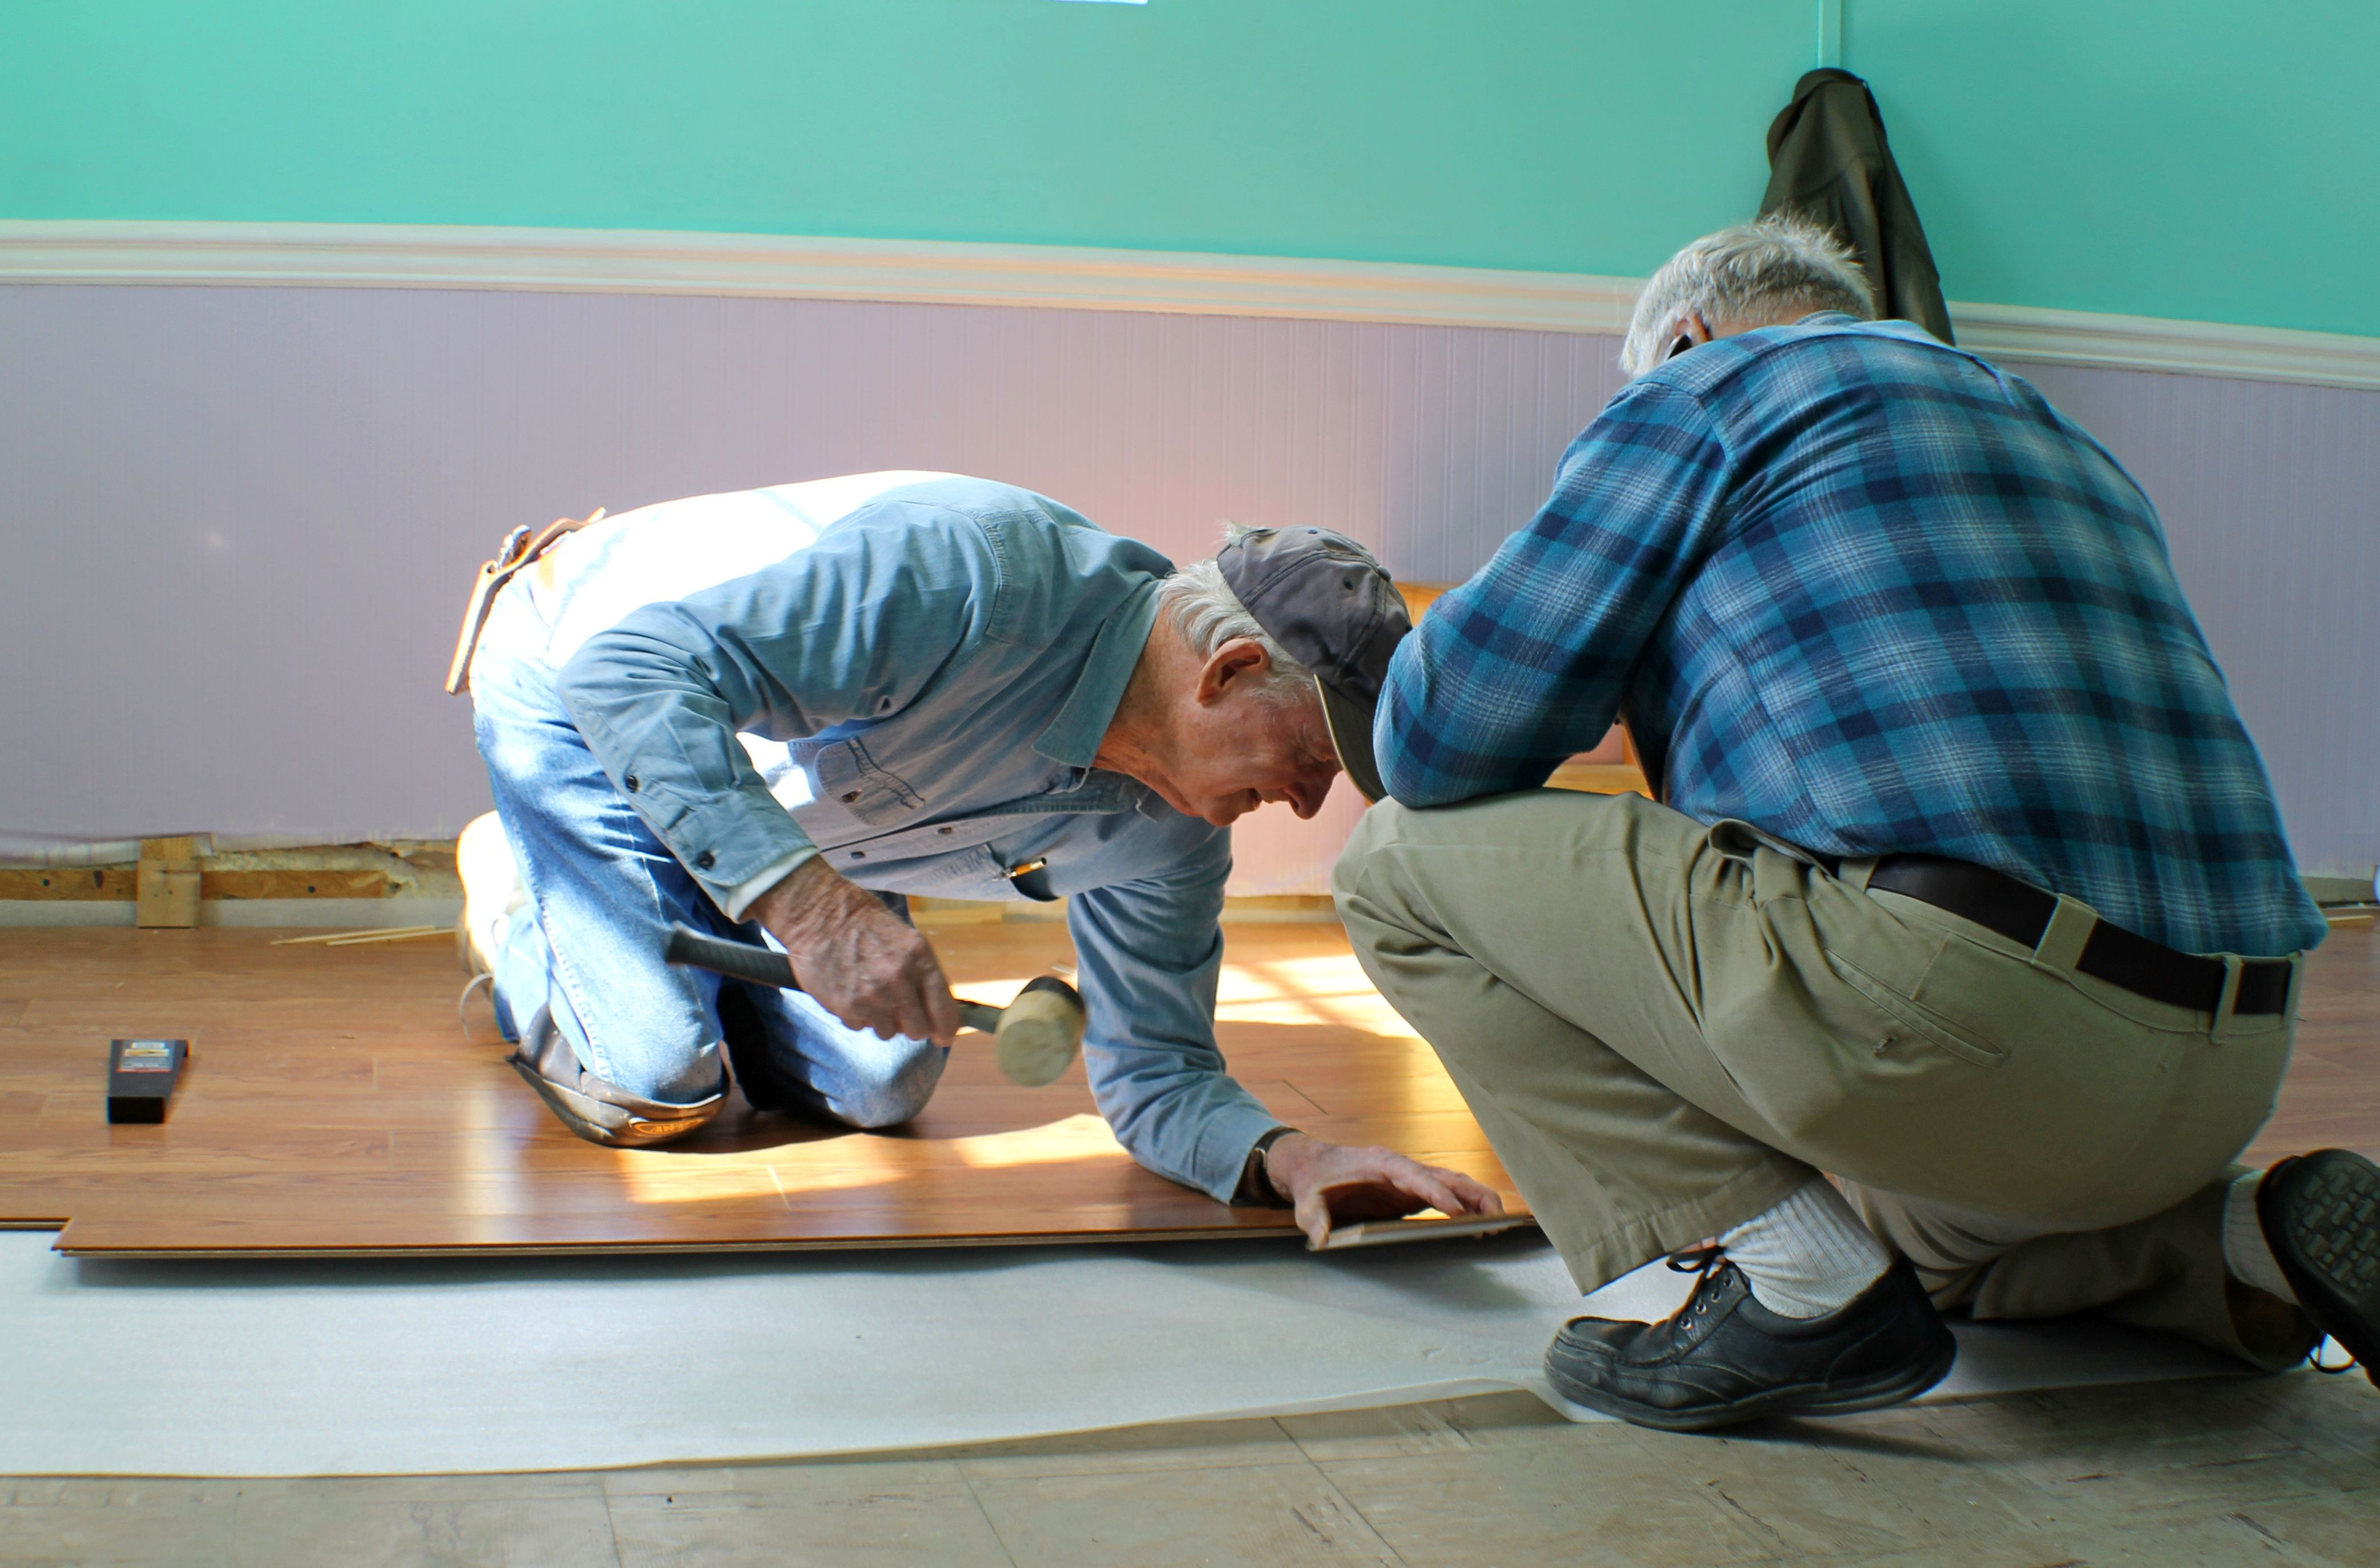 average price per square foot to install hardwood flooring of common flooring types currently used in renovation and building regarding laminate floor assembly setting tongue and groove 5ba27f2146e0fb00241f7302 jpg